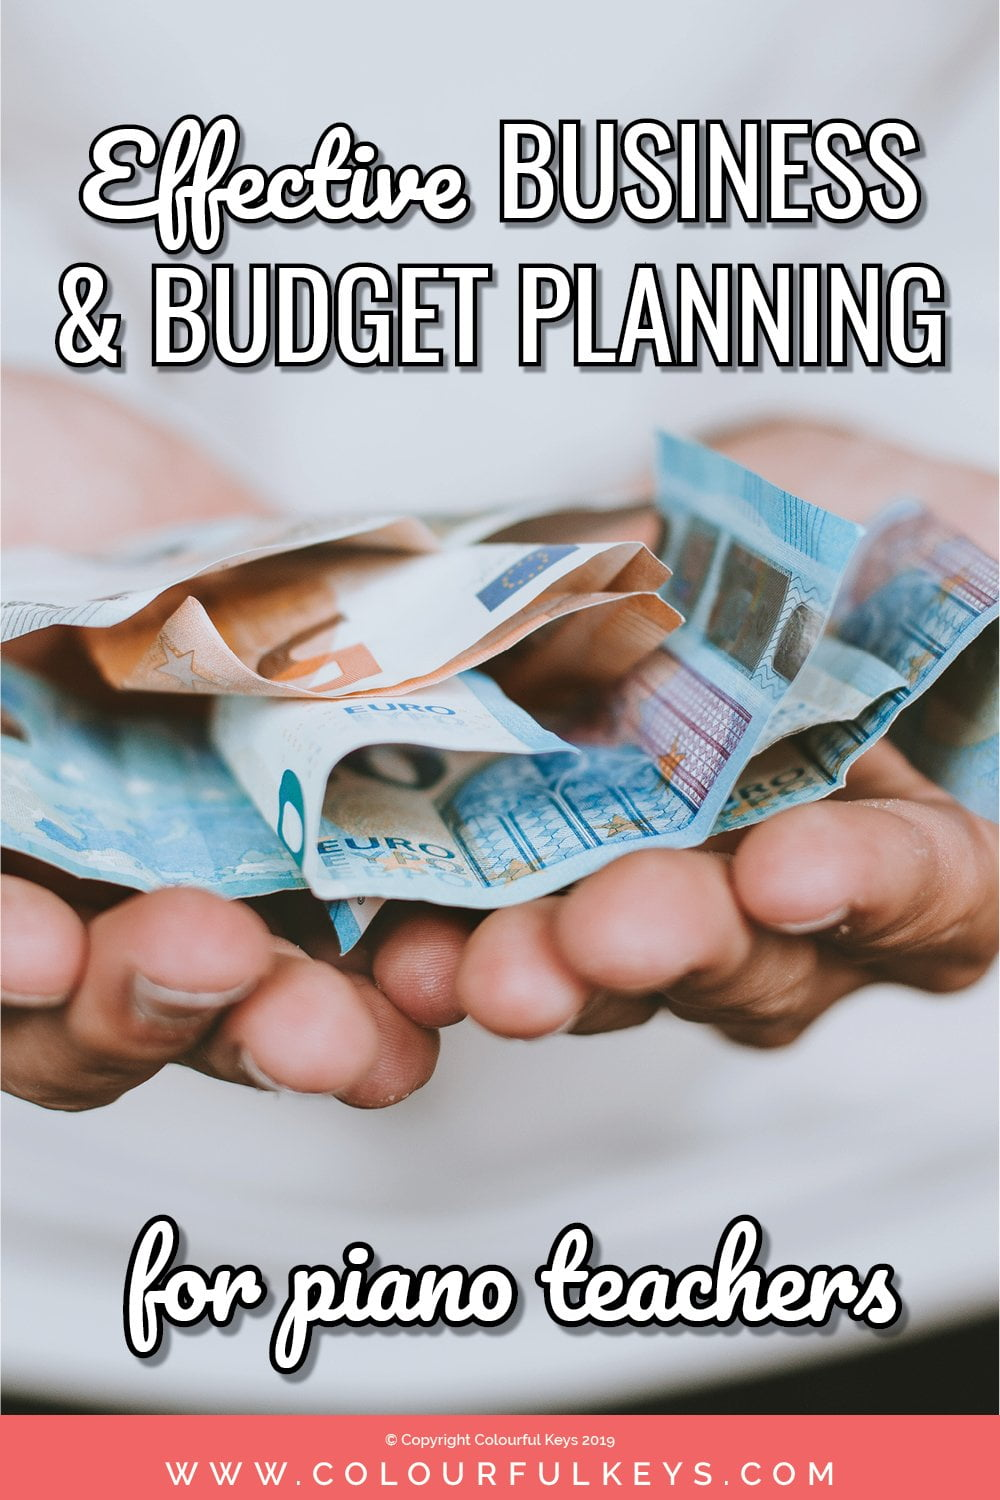 How to make a music teaching studio budget and have your most profitable year ever!